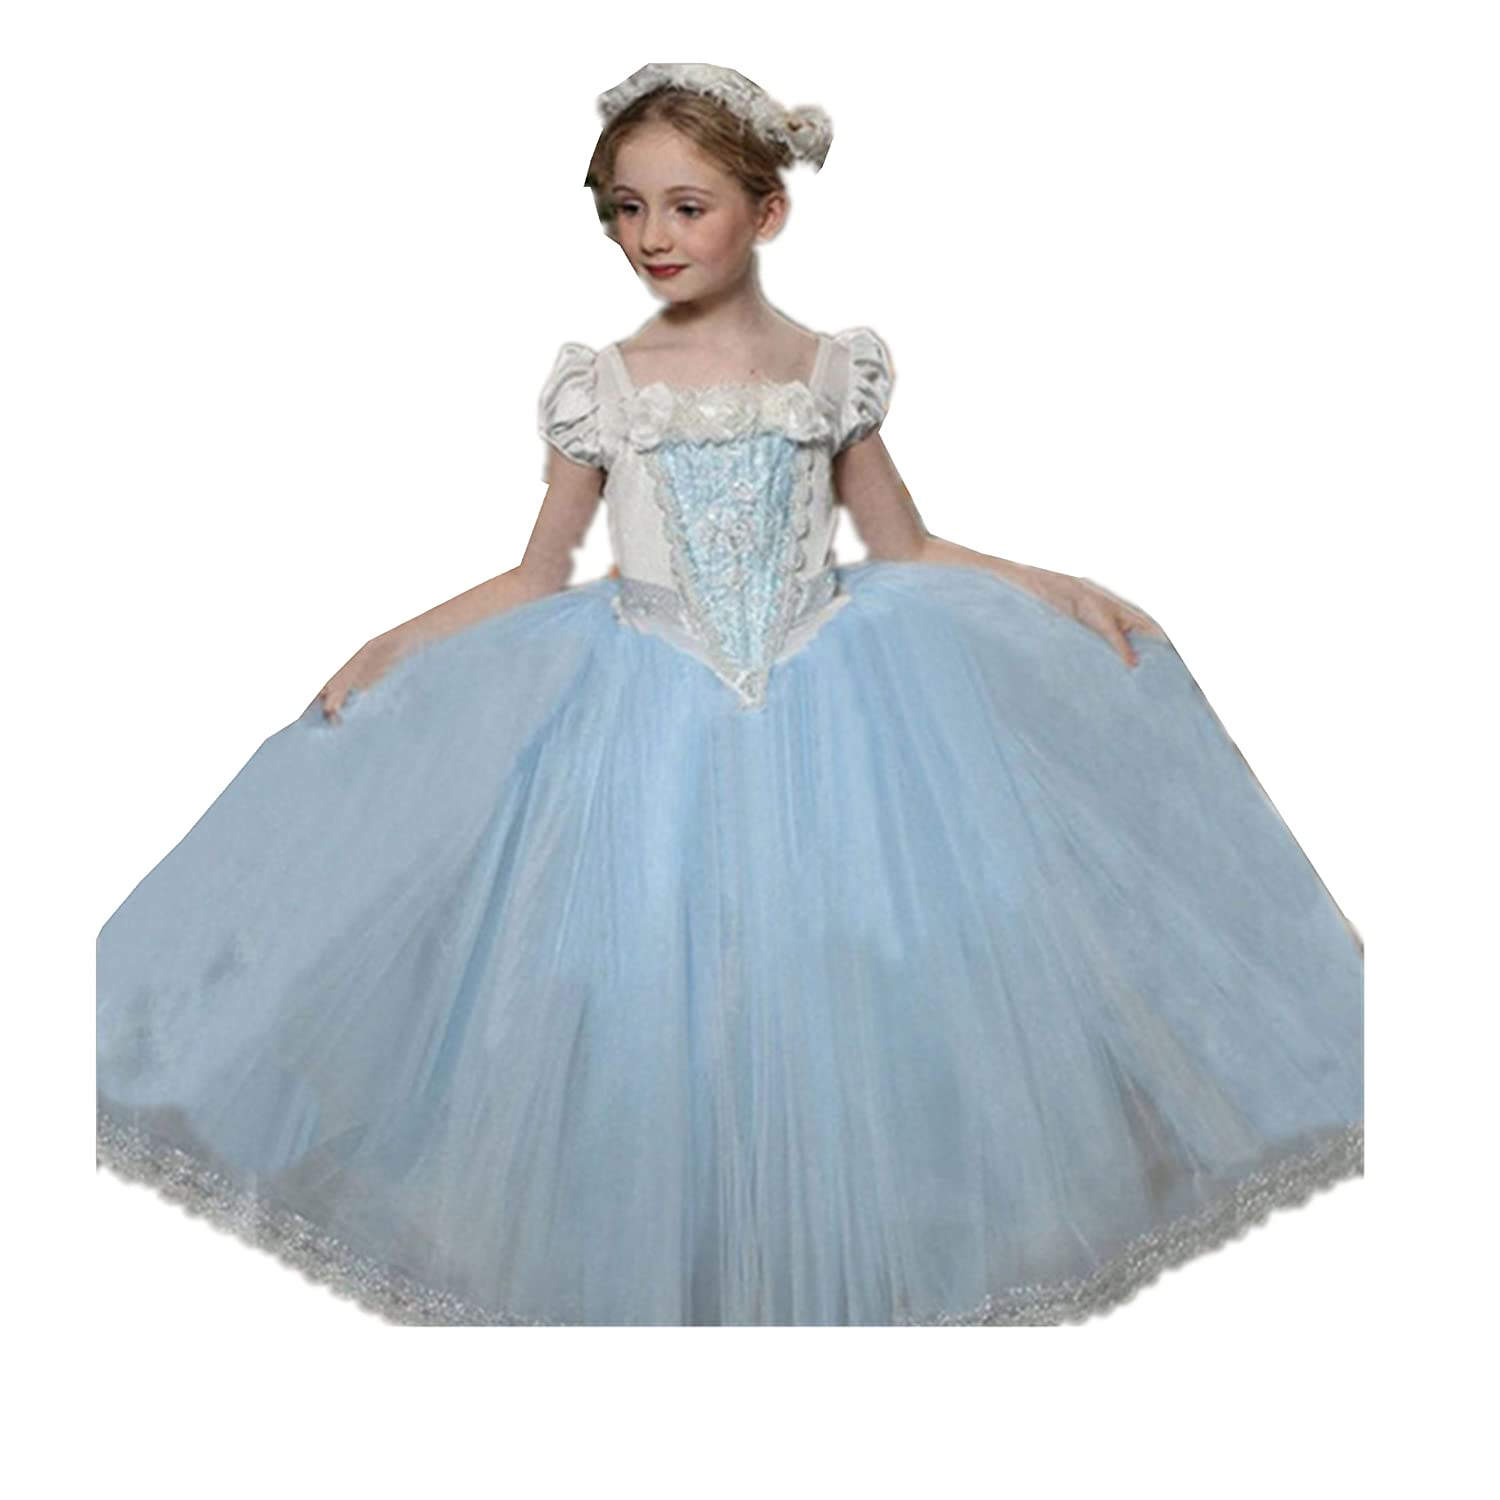 Baiduduozi Flower Princess Girls Cape Fancy Dress Xmas Halloween Cosplay Costume Party Outfit: Amazon.co.uk: Clothing